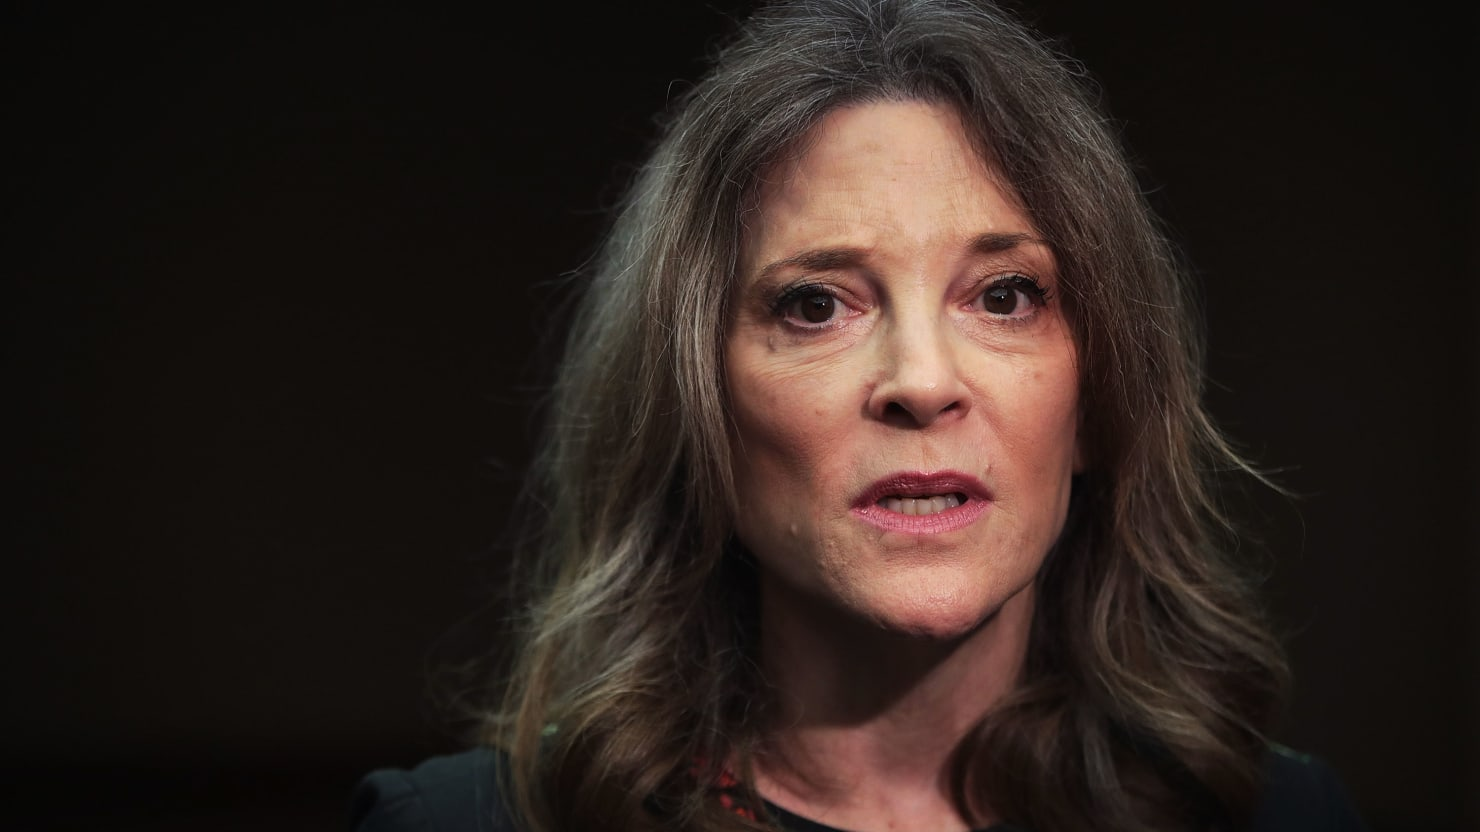 After a Far-Out Debate, Marianne Williamson Returns to Her 'Soul Base'